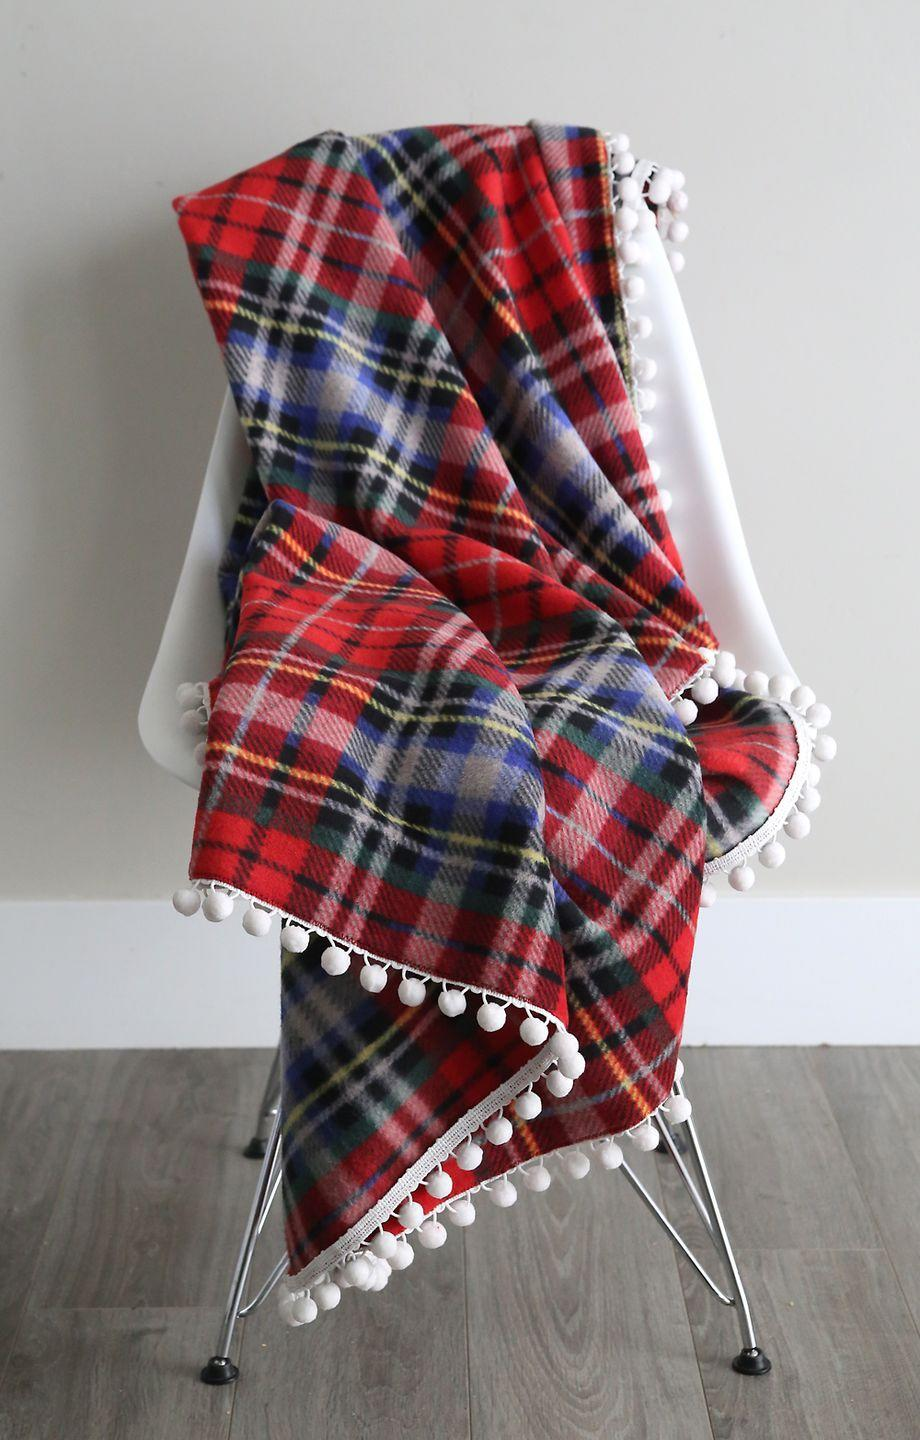 """<p>Give the gift of warmth this Christmas with a cozy fleece blanket you can make yourself. </p><p><strong>Get the tutorial at <a href=""""https://www.itsalwaysautumn.com/easy-beautiful-diy-fleece-blankets.html"""" rel=""""nofollow noopener"""" target=""""_blank"""" data-ylk=""""slk:It's Always Autumn"""" class=""""link rapid-noclick-resp"""">It's Always Autumn</a>.</strong></p><p><strong><strong><a class=""""link rapid-noclick-resp"""" href=""""https://go.redirectingat.com?id=74968X1596630&url=https%3A%2F%2Fwww.joann.com%2Fsearch%3Fq%3Dplaid%2Bfleece%26prefn1%3DproductGroup%26prefv1%3DProduct&sref=https%3A%2F%2Fwww.countryliving.com%2Fdiy-crafts%2Ftips%2Fg645%2Fcrafty-christmas-presents-ideas%2F"""" rel=""""nofollow noopener"""" target=""""_blank"""" data-ylk=""""slk:SHOP FLEECE"""">SHOP FLEECE</a></strong><br></strong></p>"""